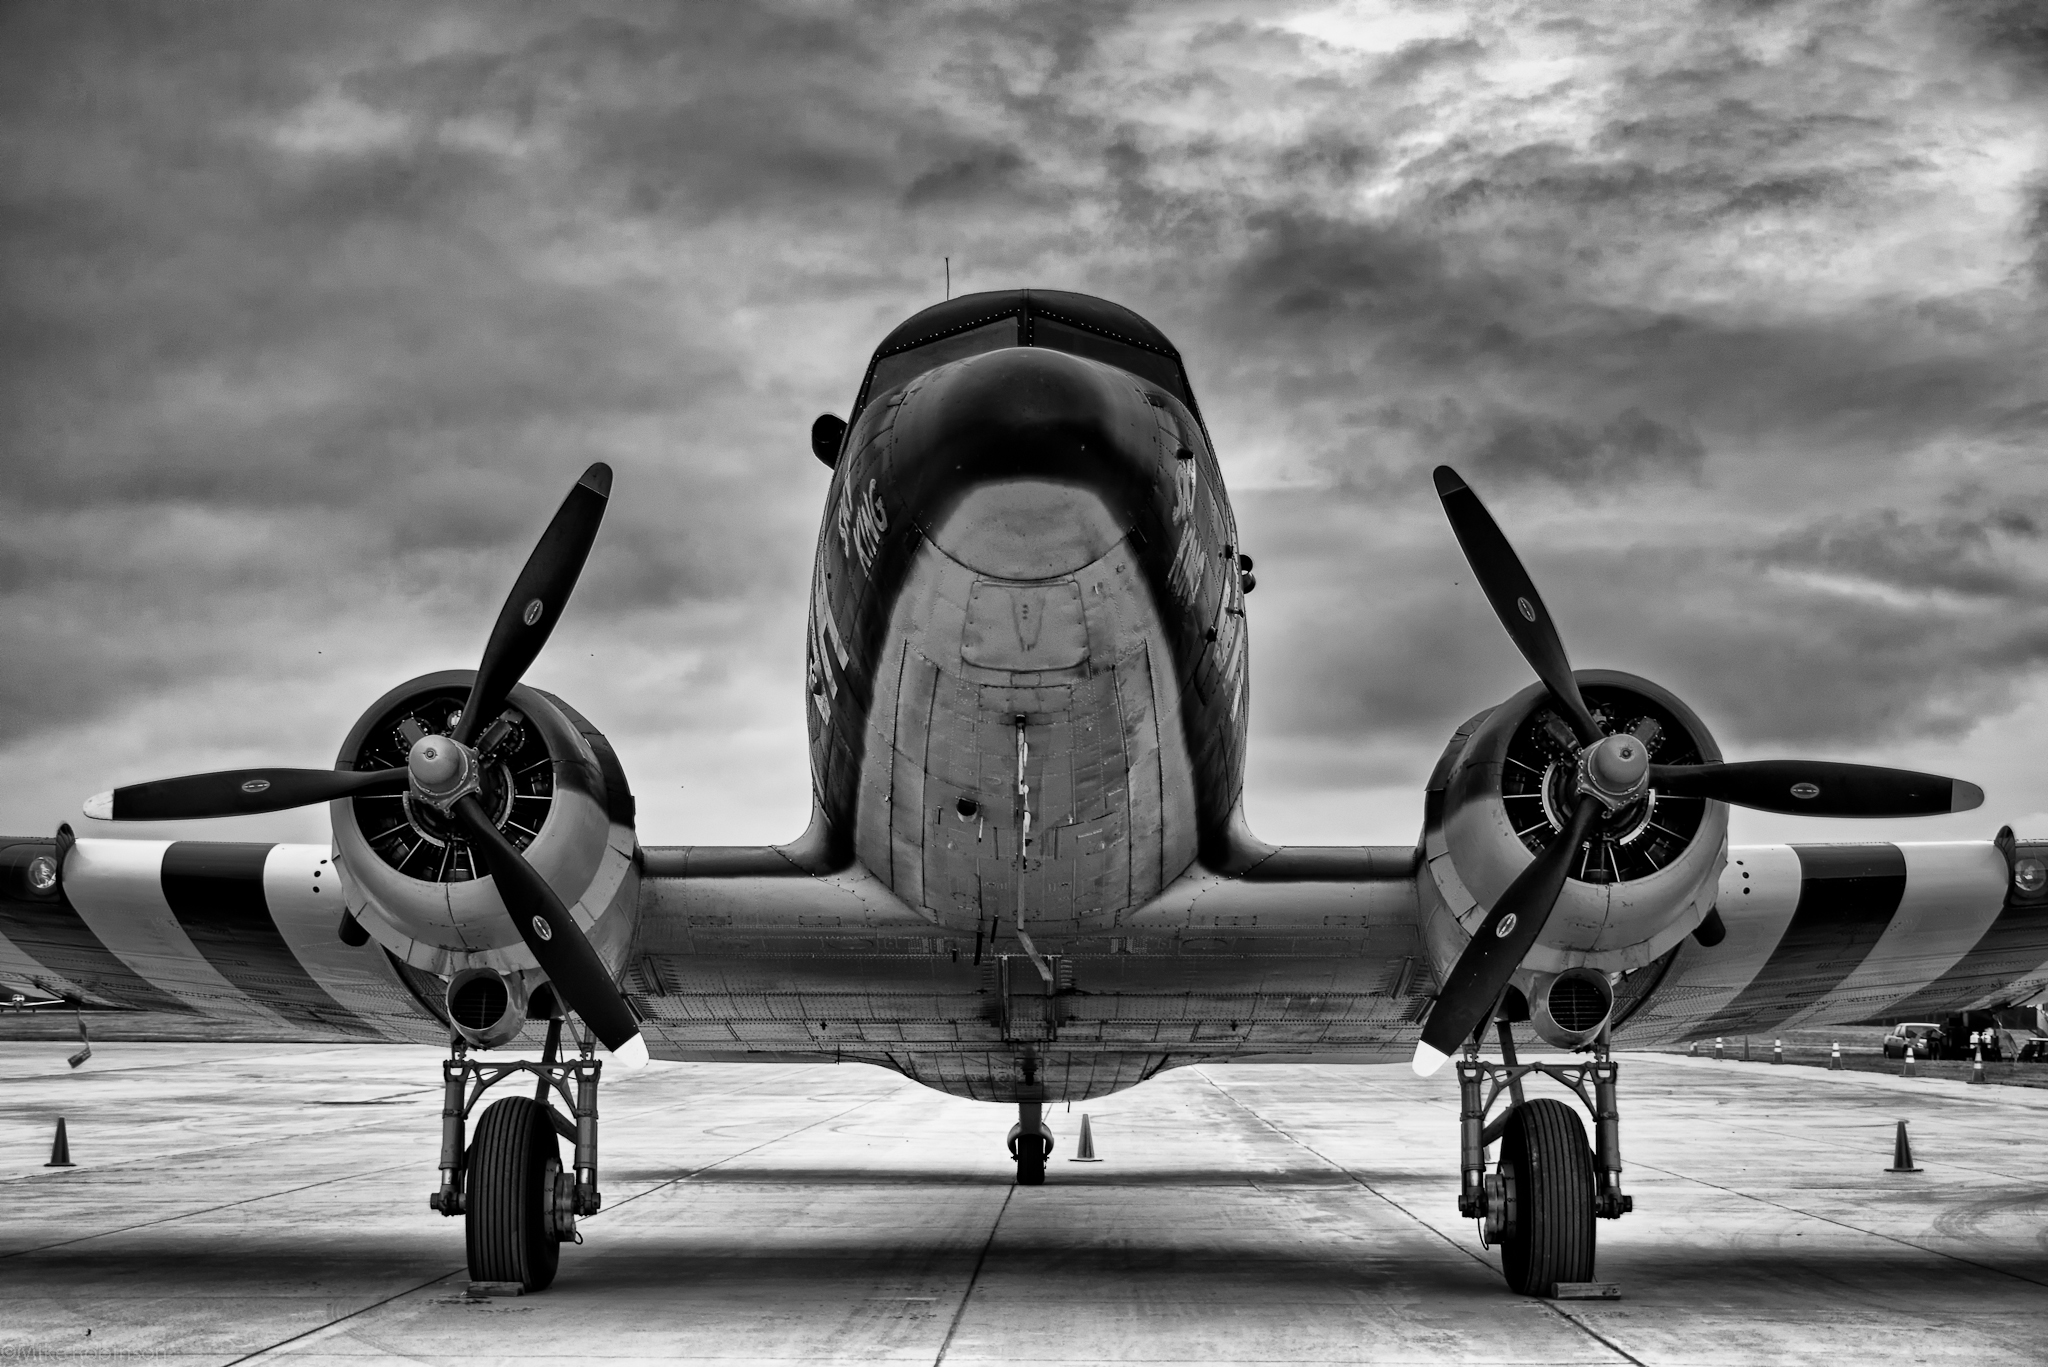 Black and white planes